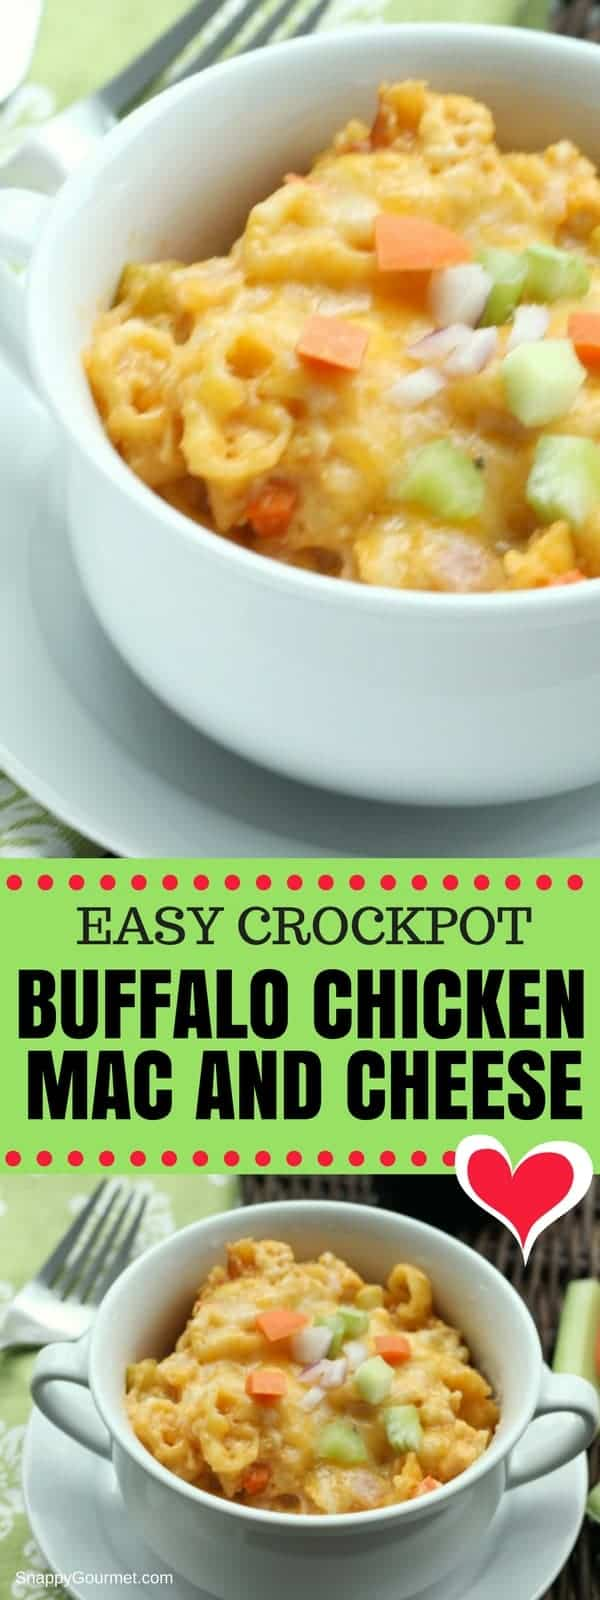 Buffalo Chicken Mac and Cheese (Crockpot) Recipe - easy slow cooker buffalo chicken macaroni and cheese full of chicken, pasta, cheese, and veggies!